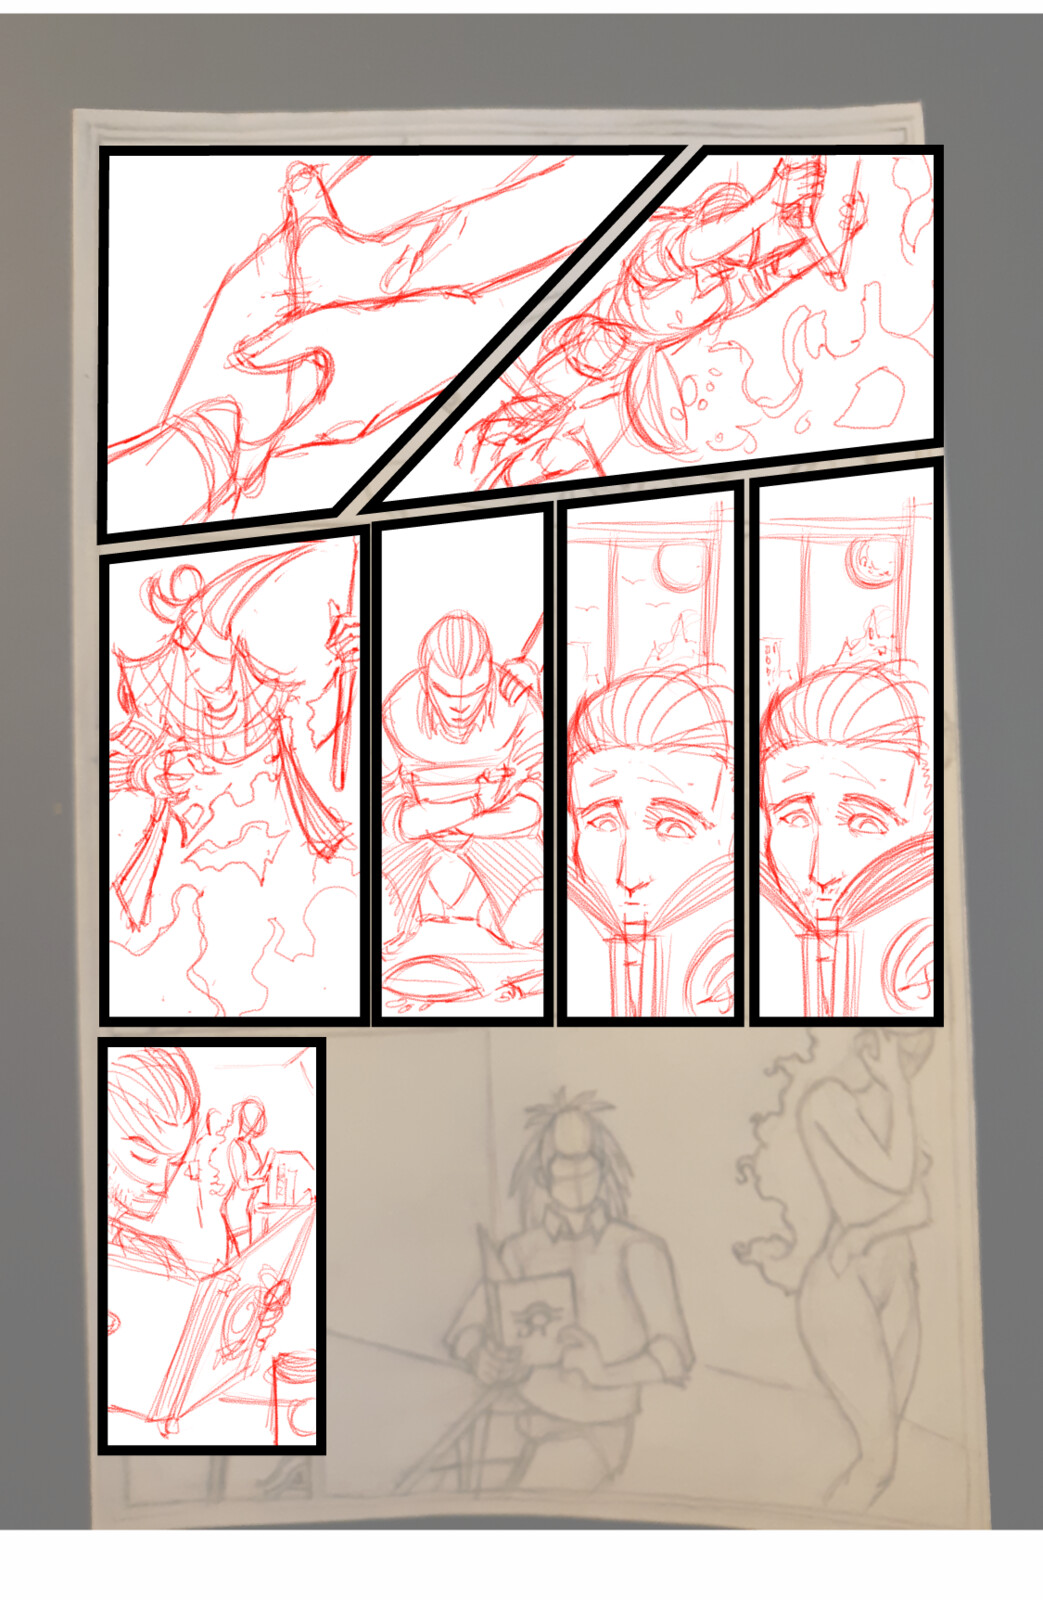 Book of Thoth Page 5 Penciled